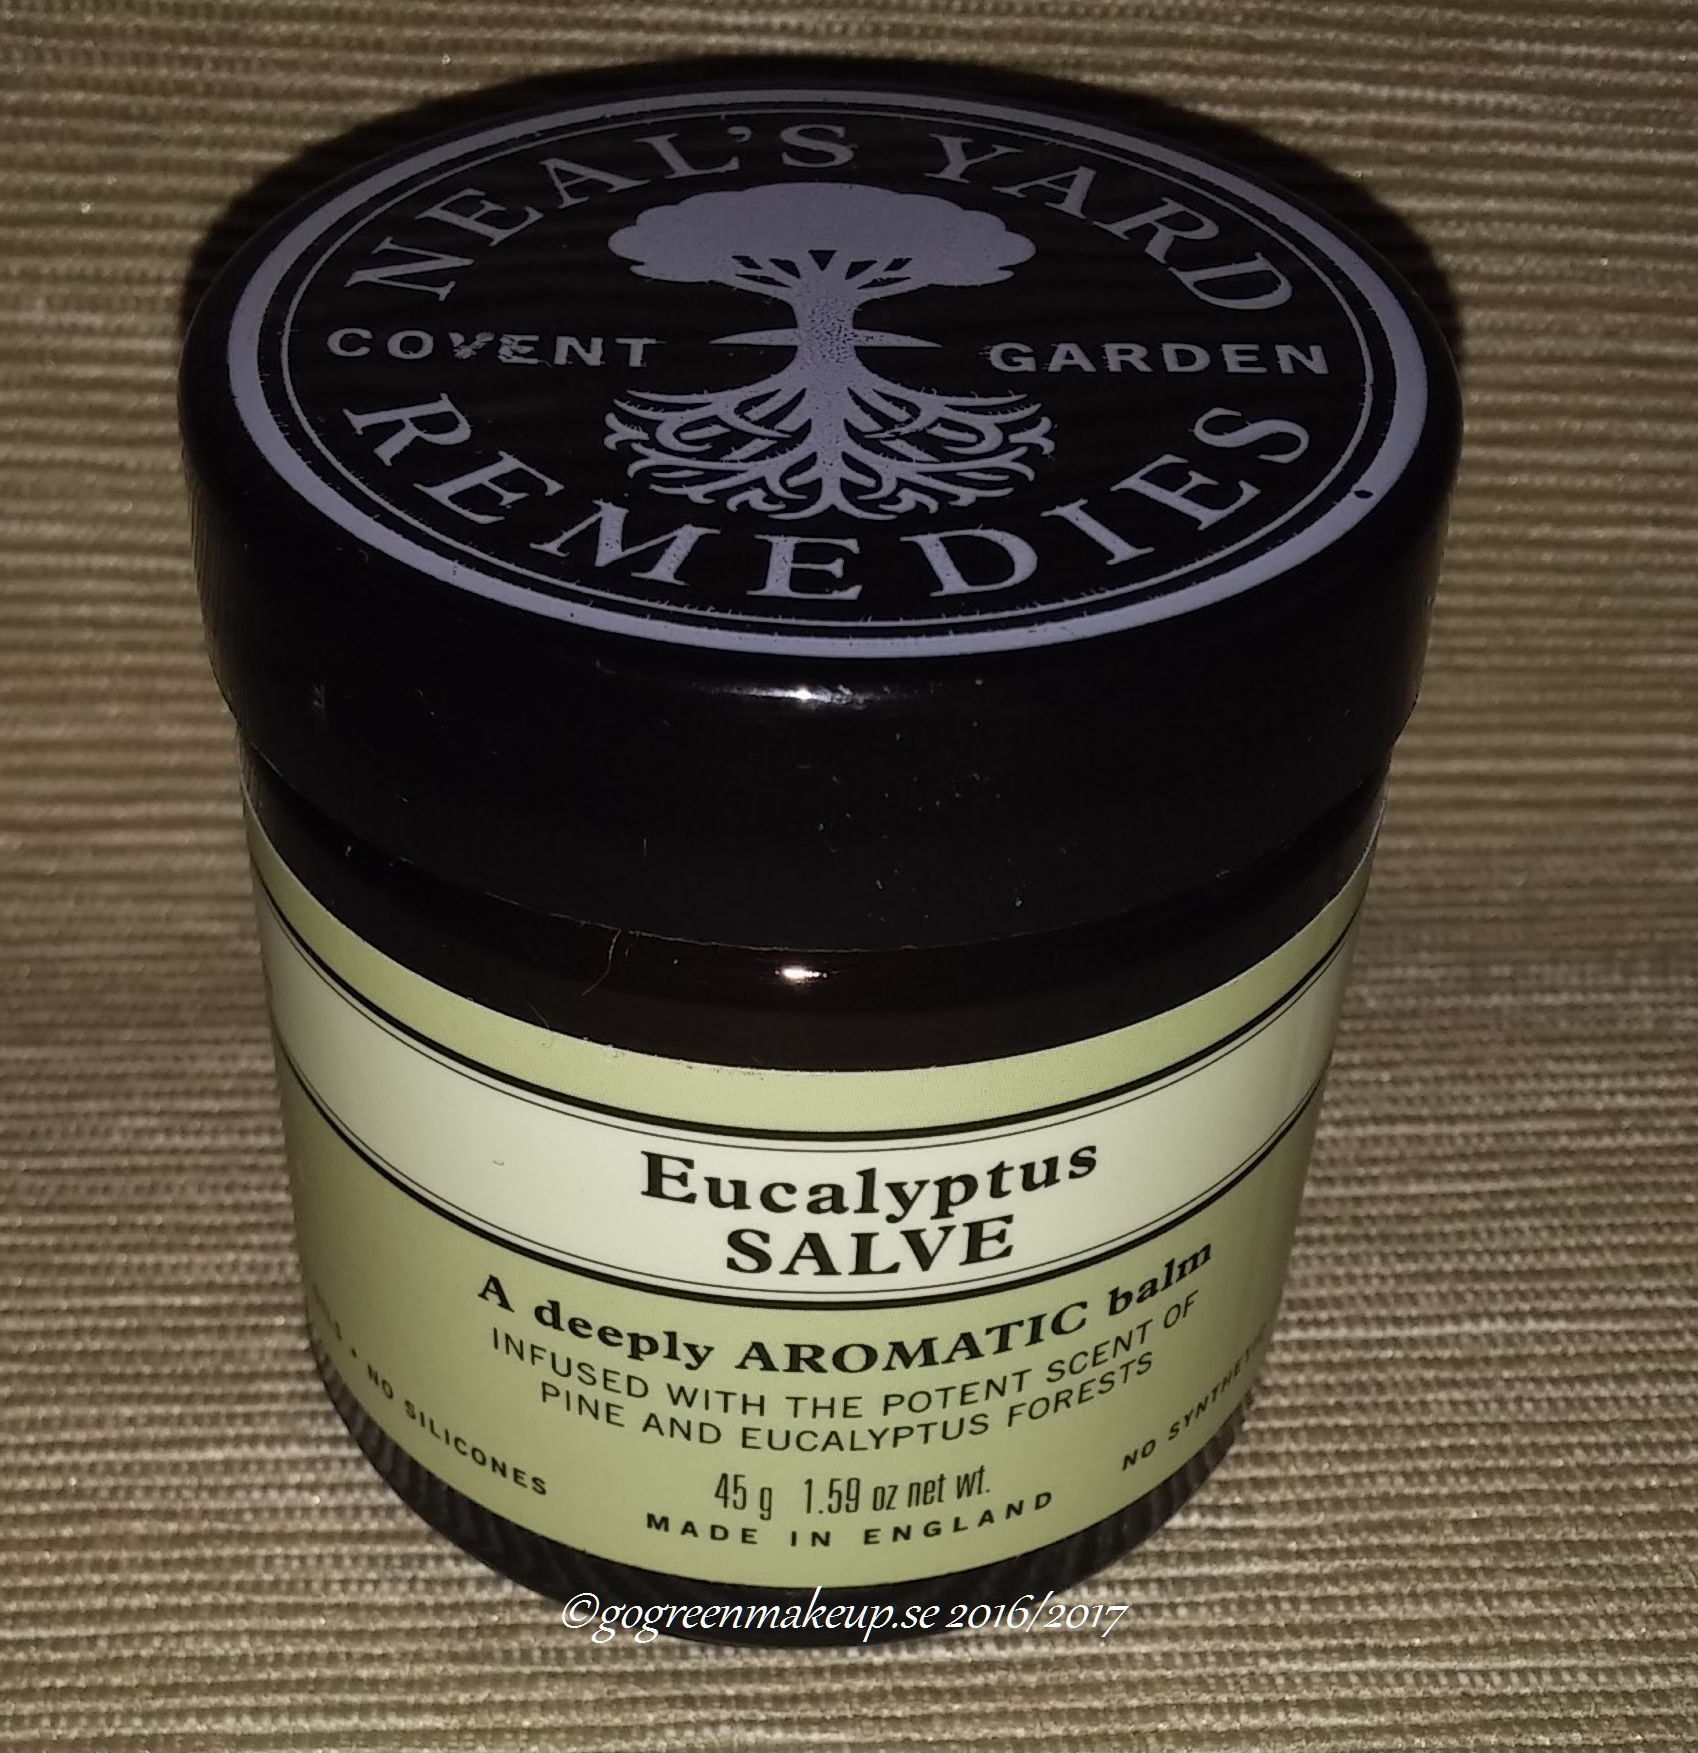 neal yard's remedies eucalyptus salve